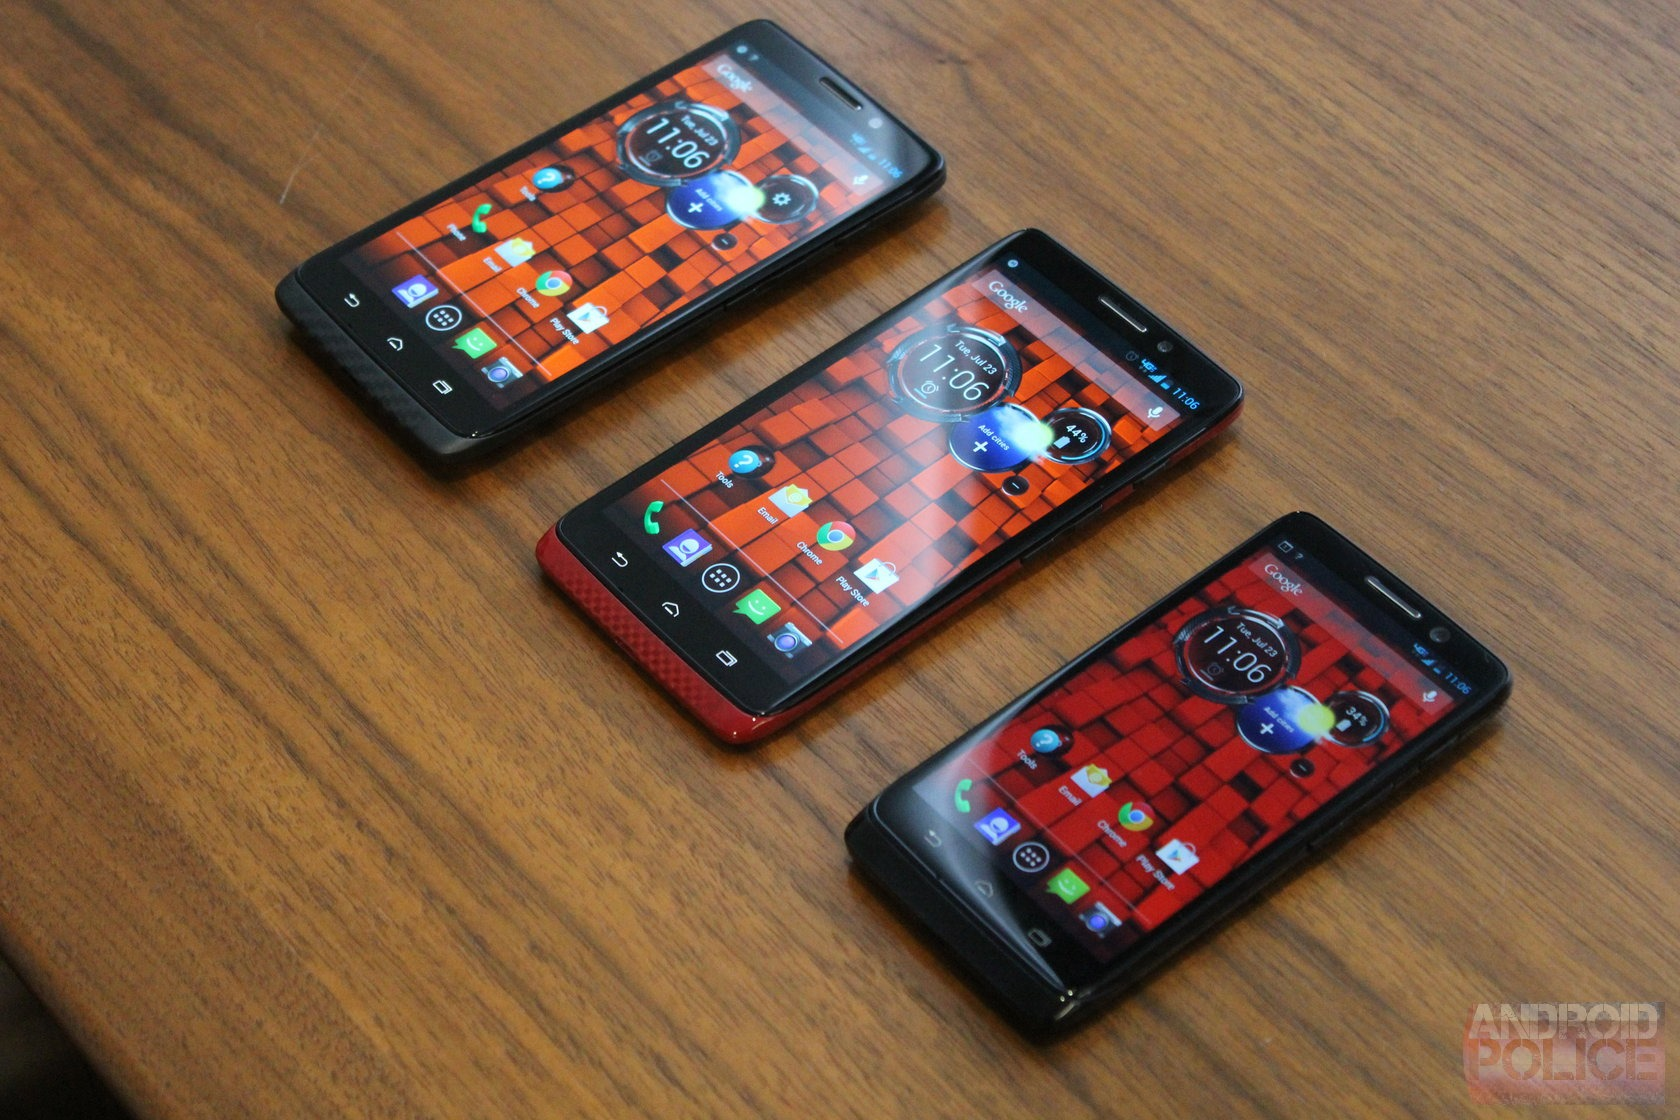 [Hands-On w/ Video] The DROID Ultra, MAXX, And Mini - Three Different Phones That Are All Pretty Much The Same